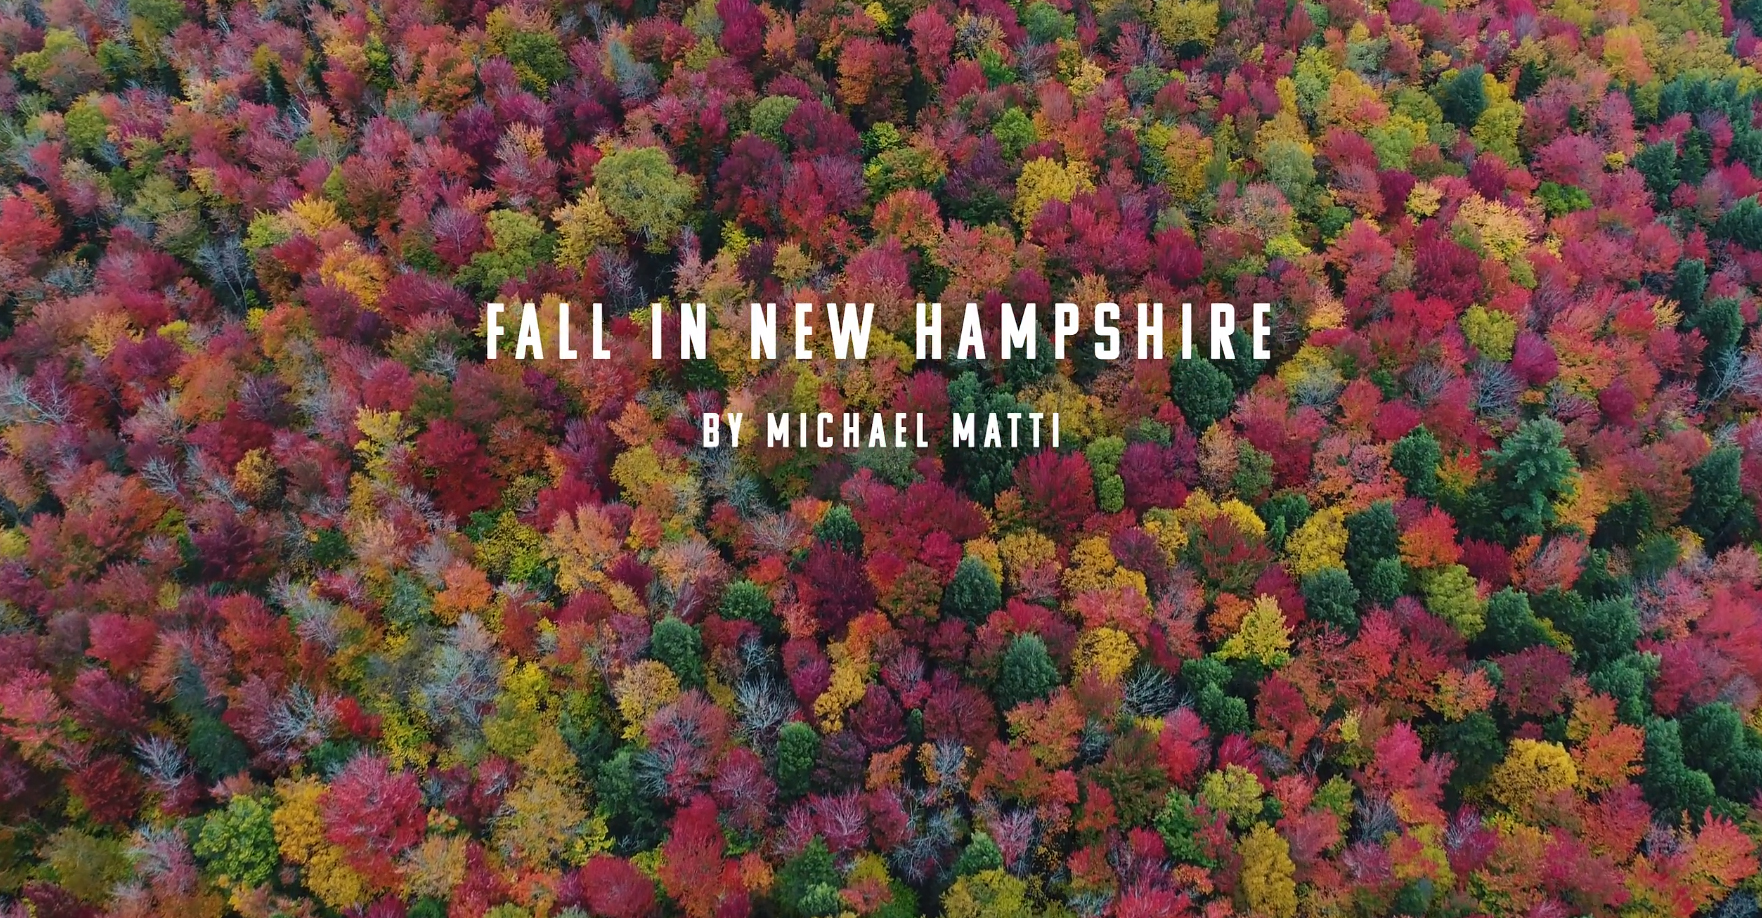 Gorgeous Fall has arrived in New Hampshire